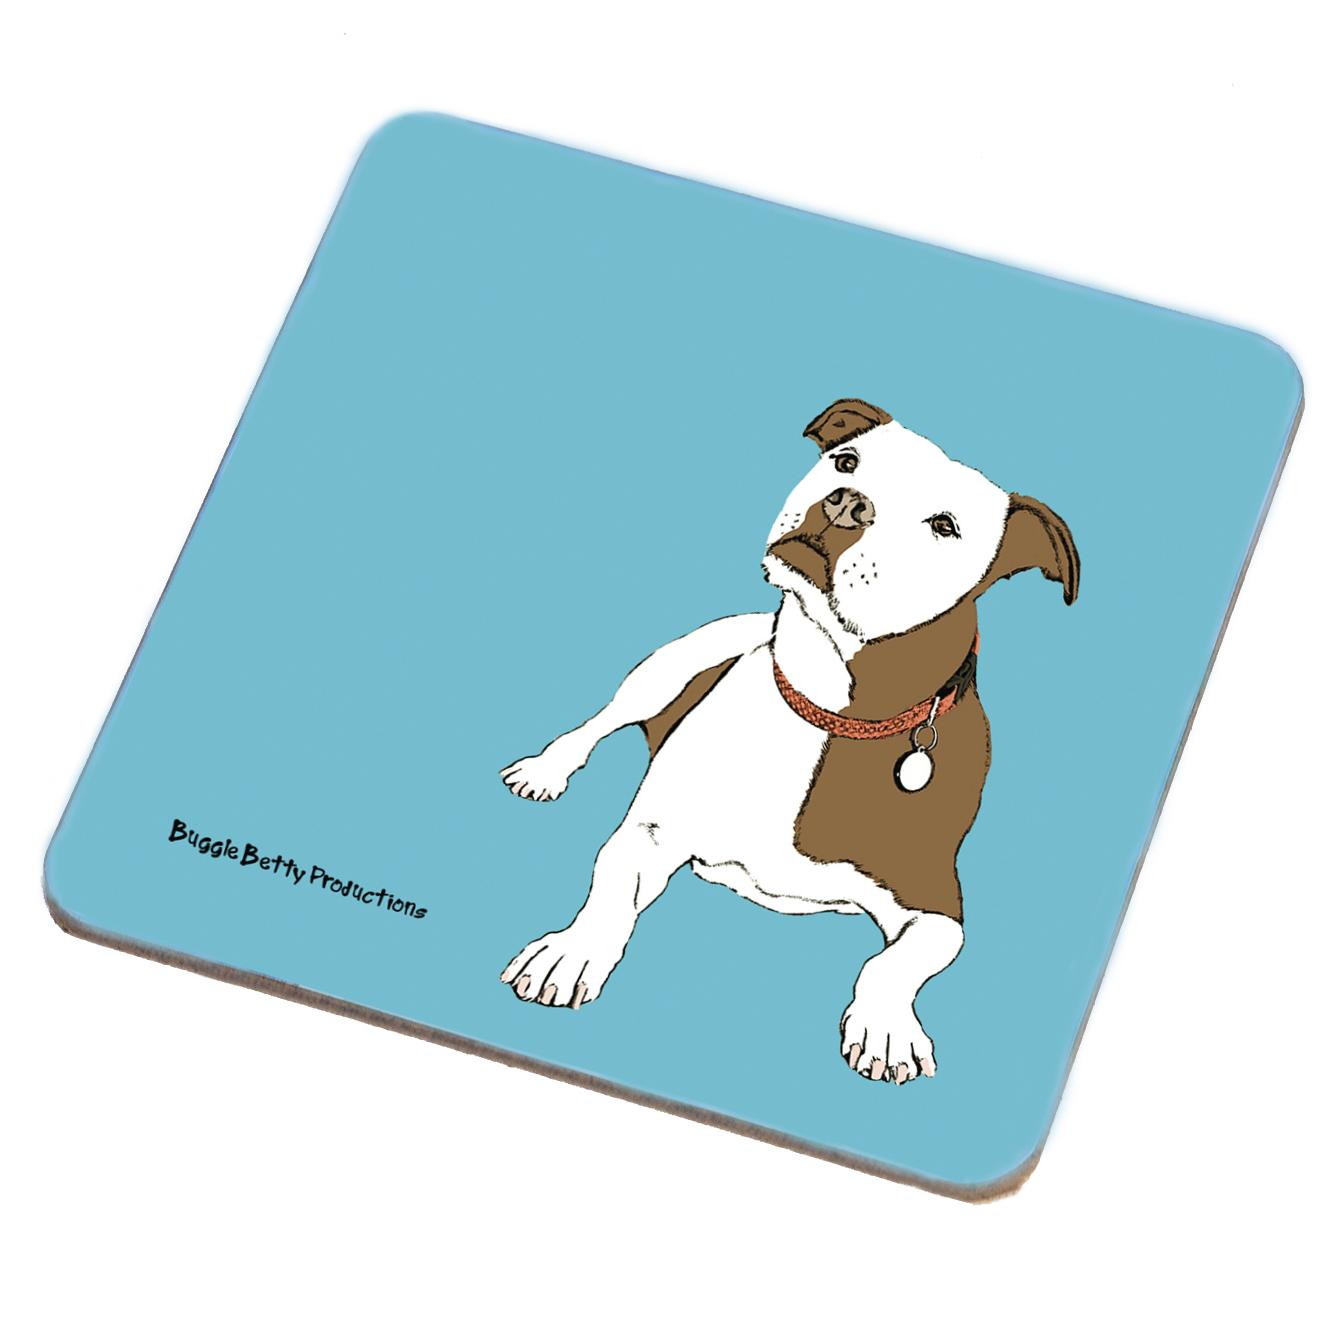 Staffordshire Bull Terrier - Staffie Coaster